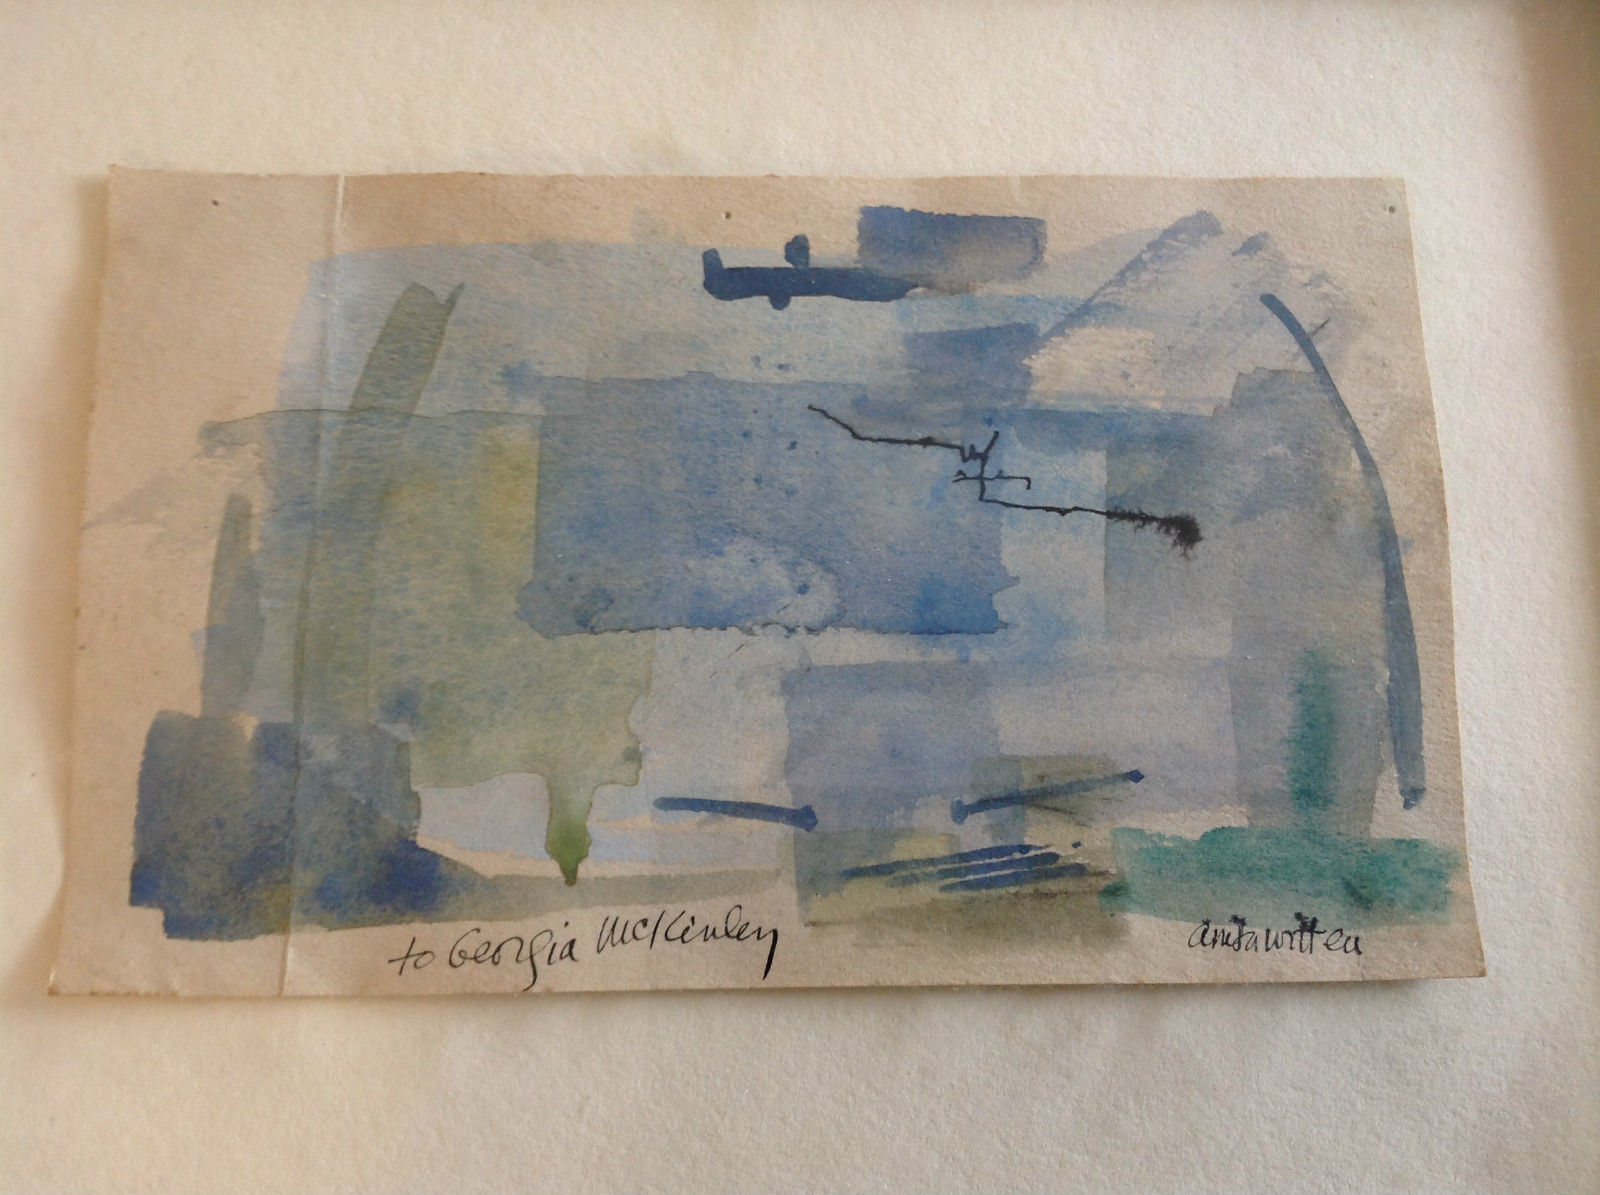 Conceptual Modernist Blue Framed Painting by Anita Witteu Dedicated